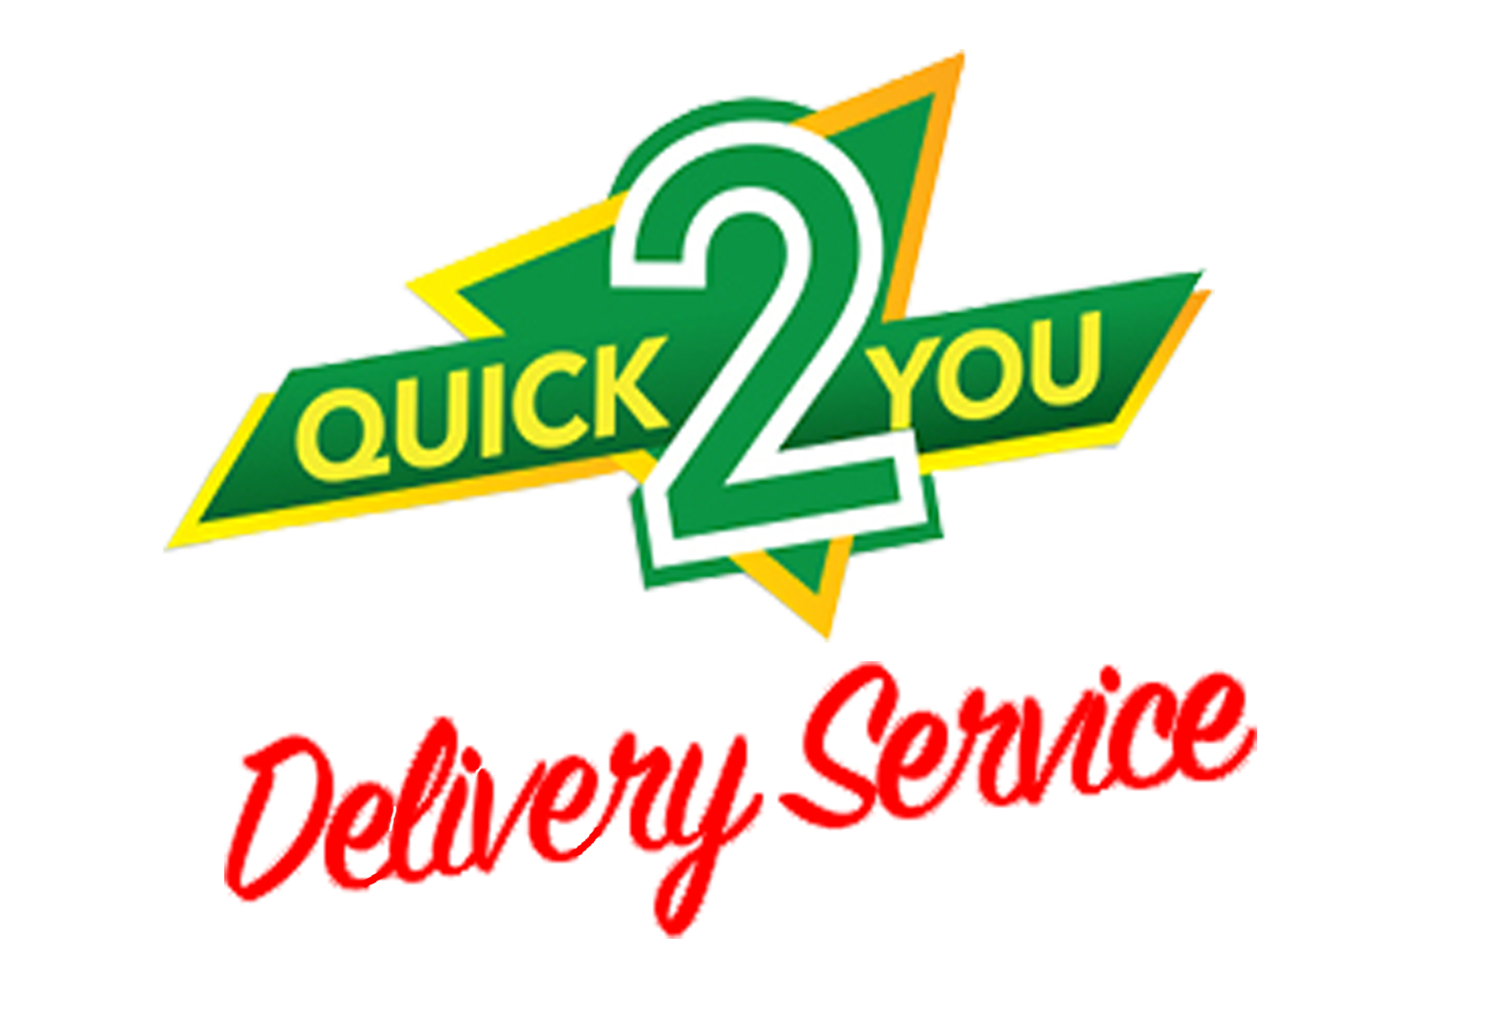 Quick 2 You Delivery